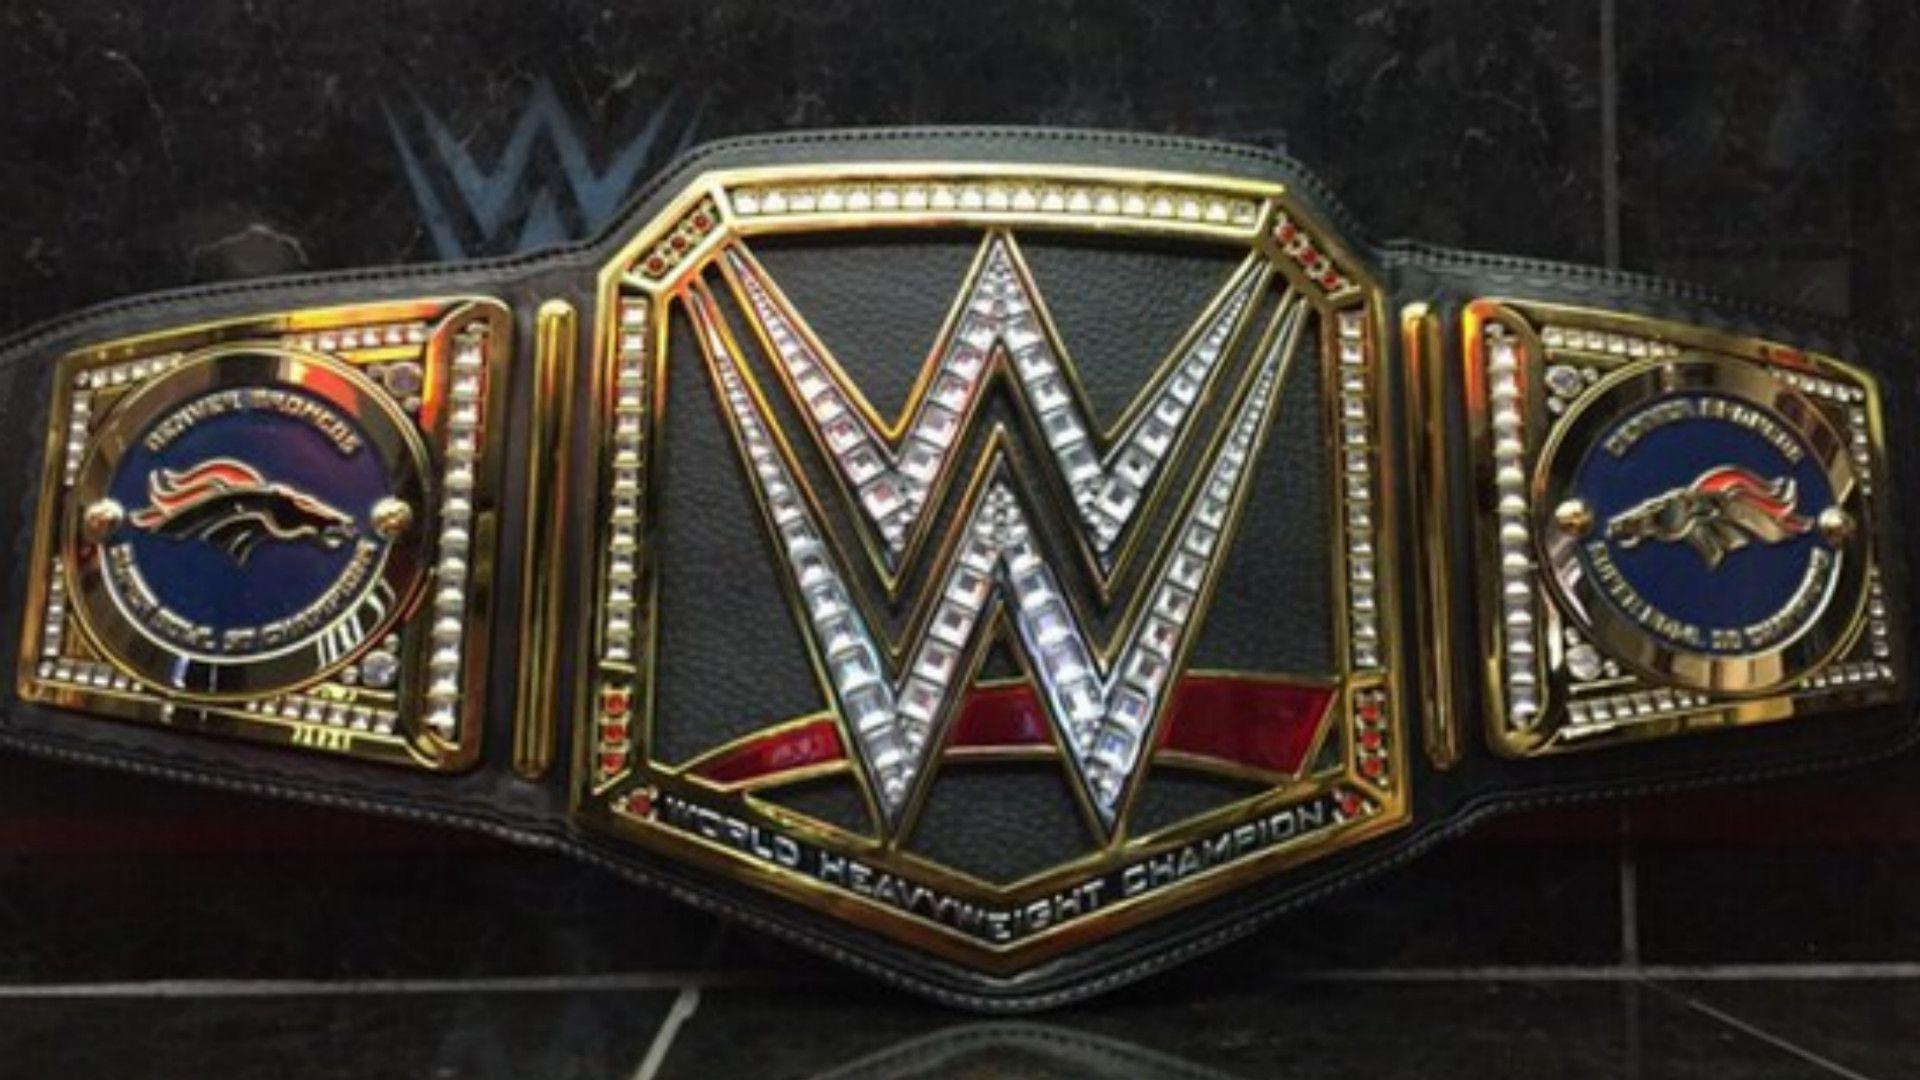 Wwe championship wallpapers wallpaper cave - Title wallpaper ...